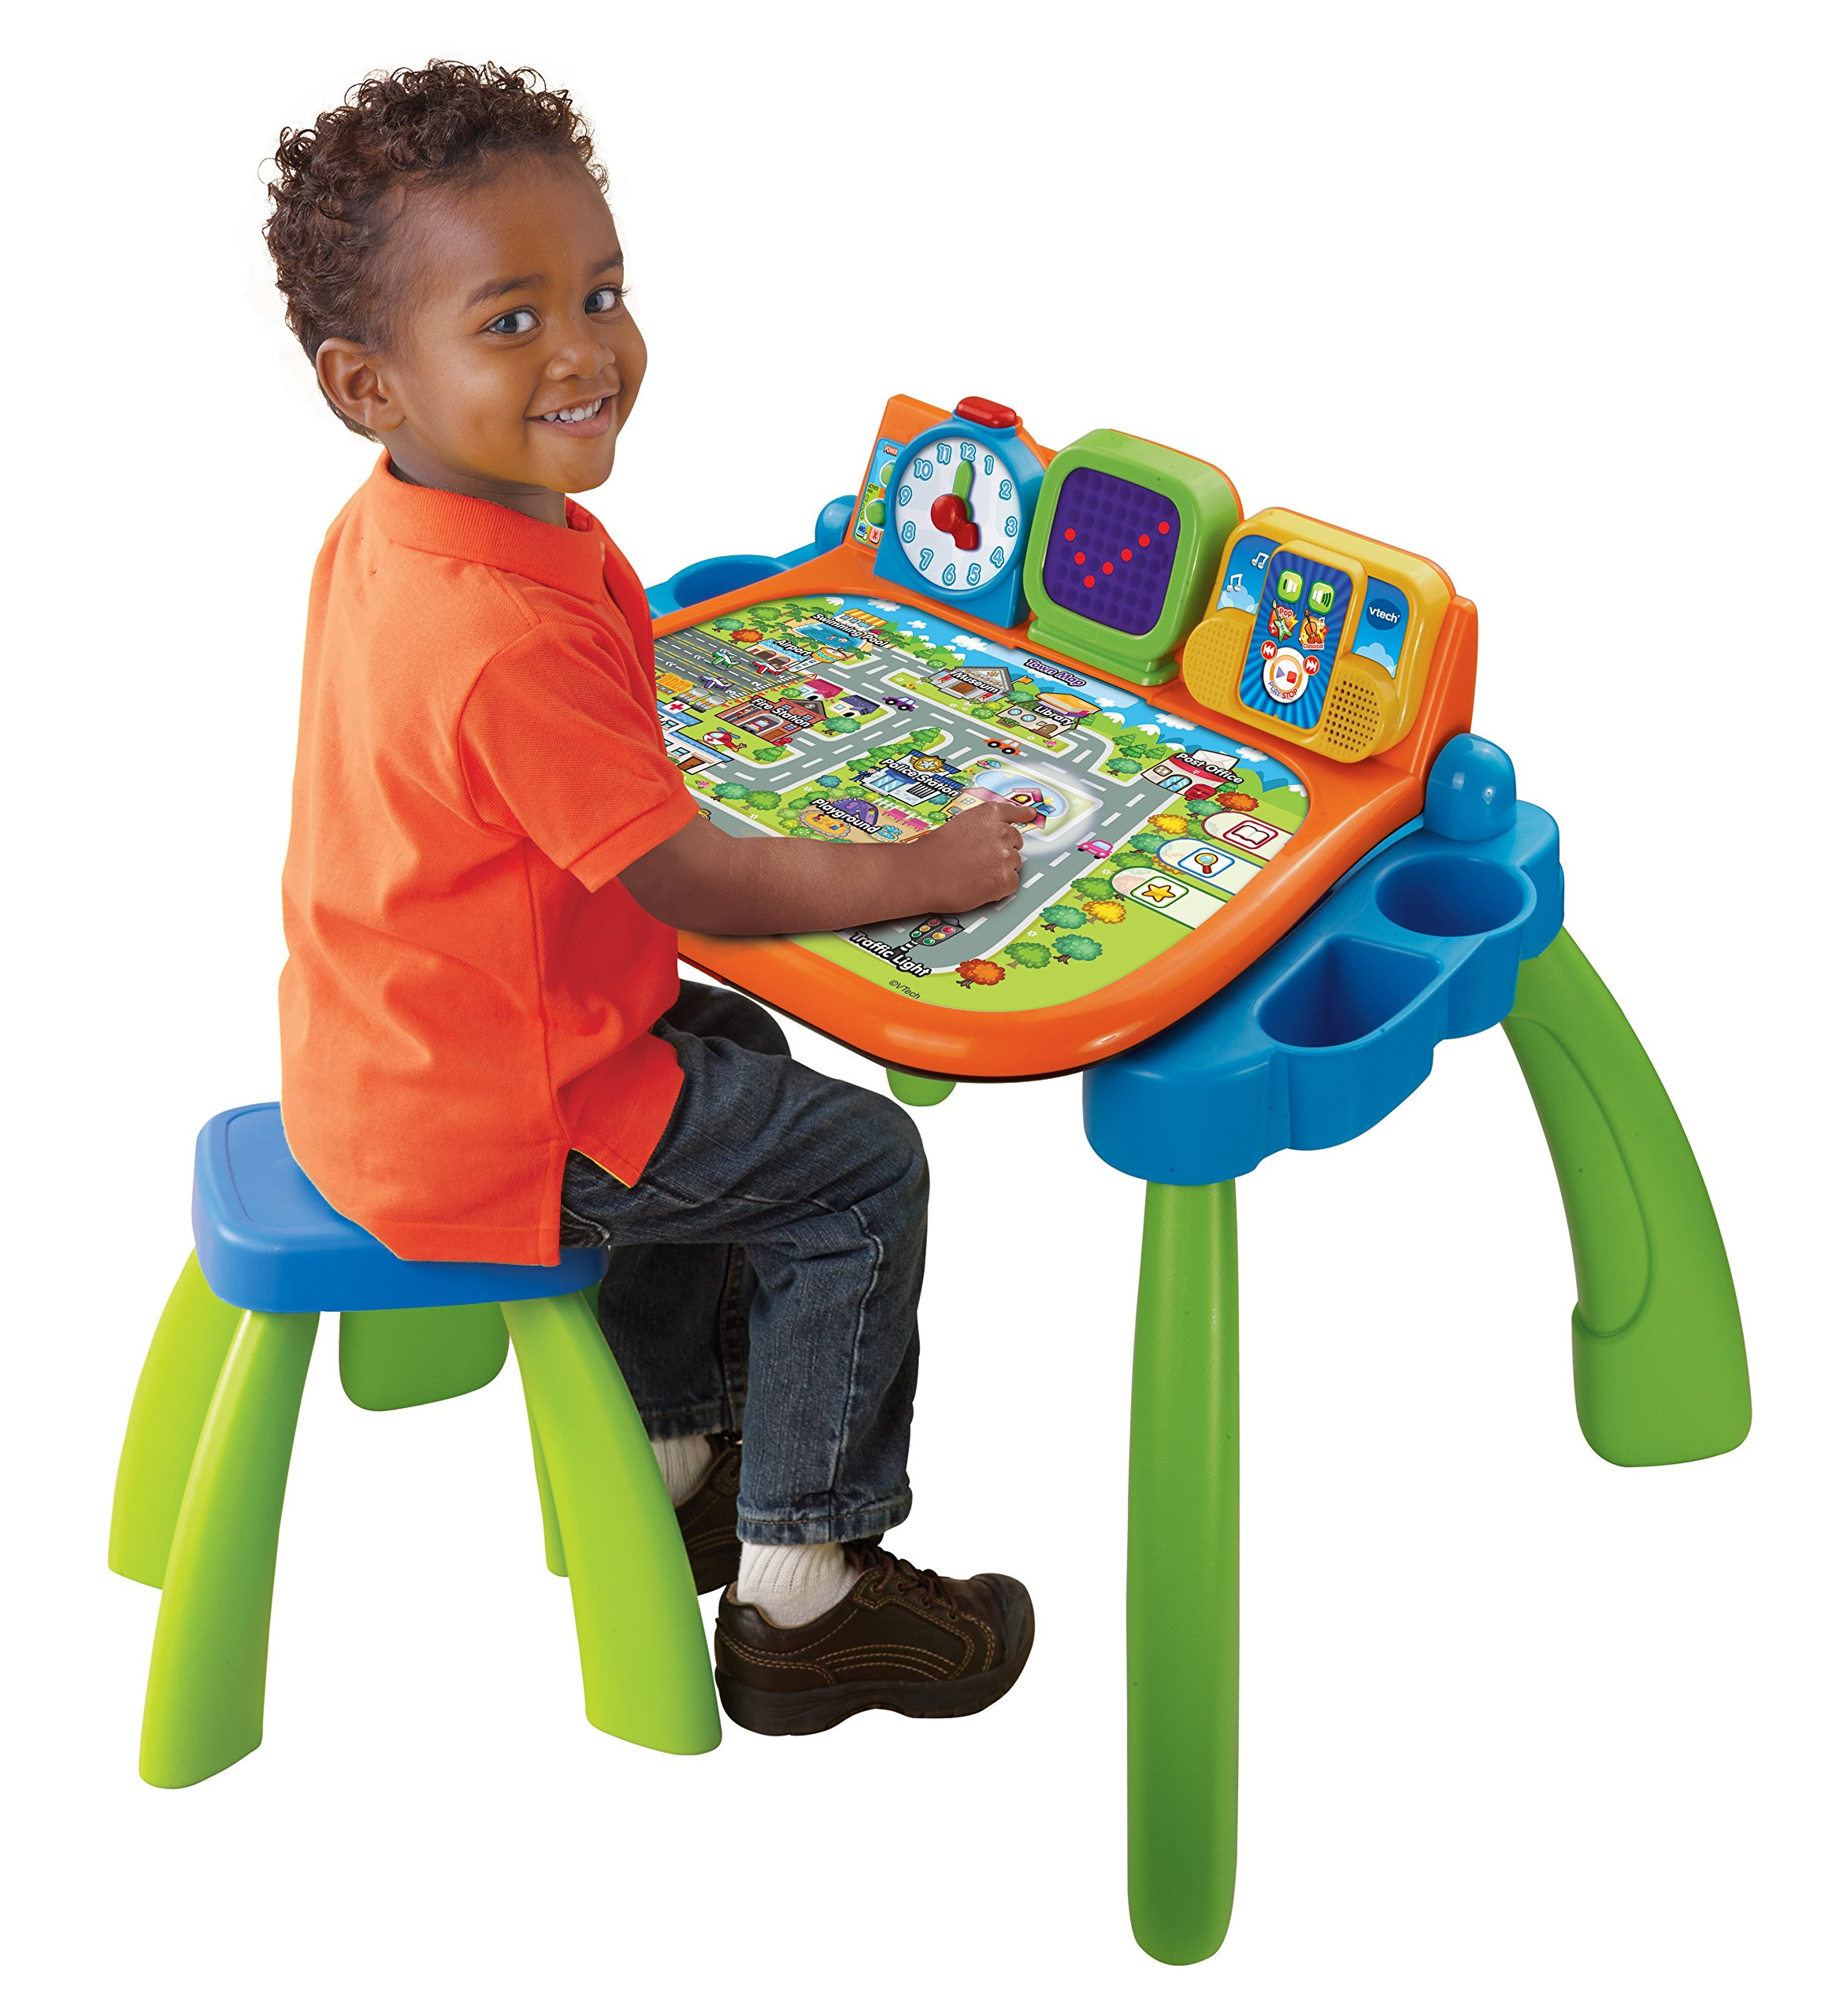 VTech Touch and Learn Activity Desk (Frustration Free Packaging), Green by VTech (Image #3)